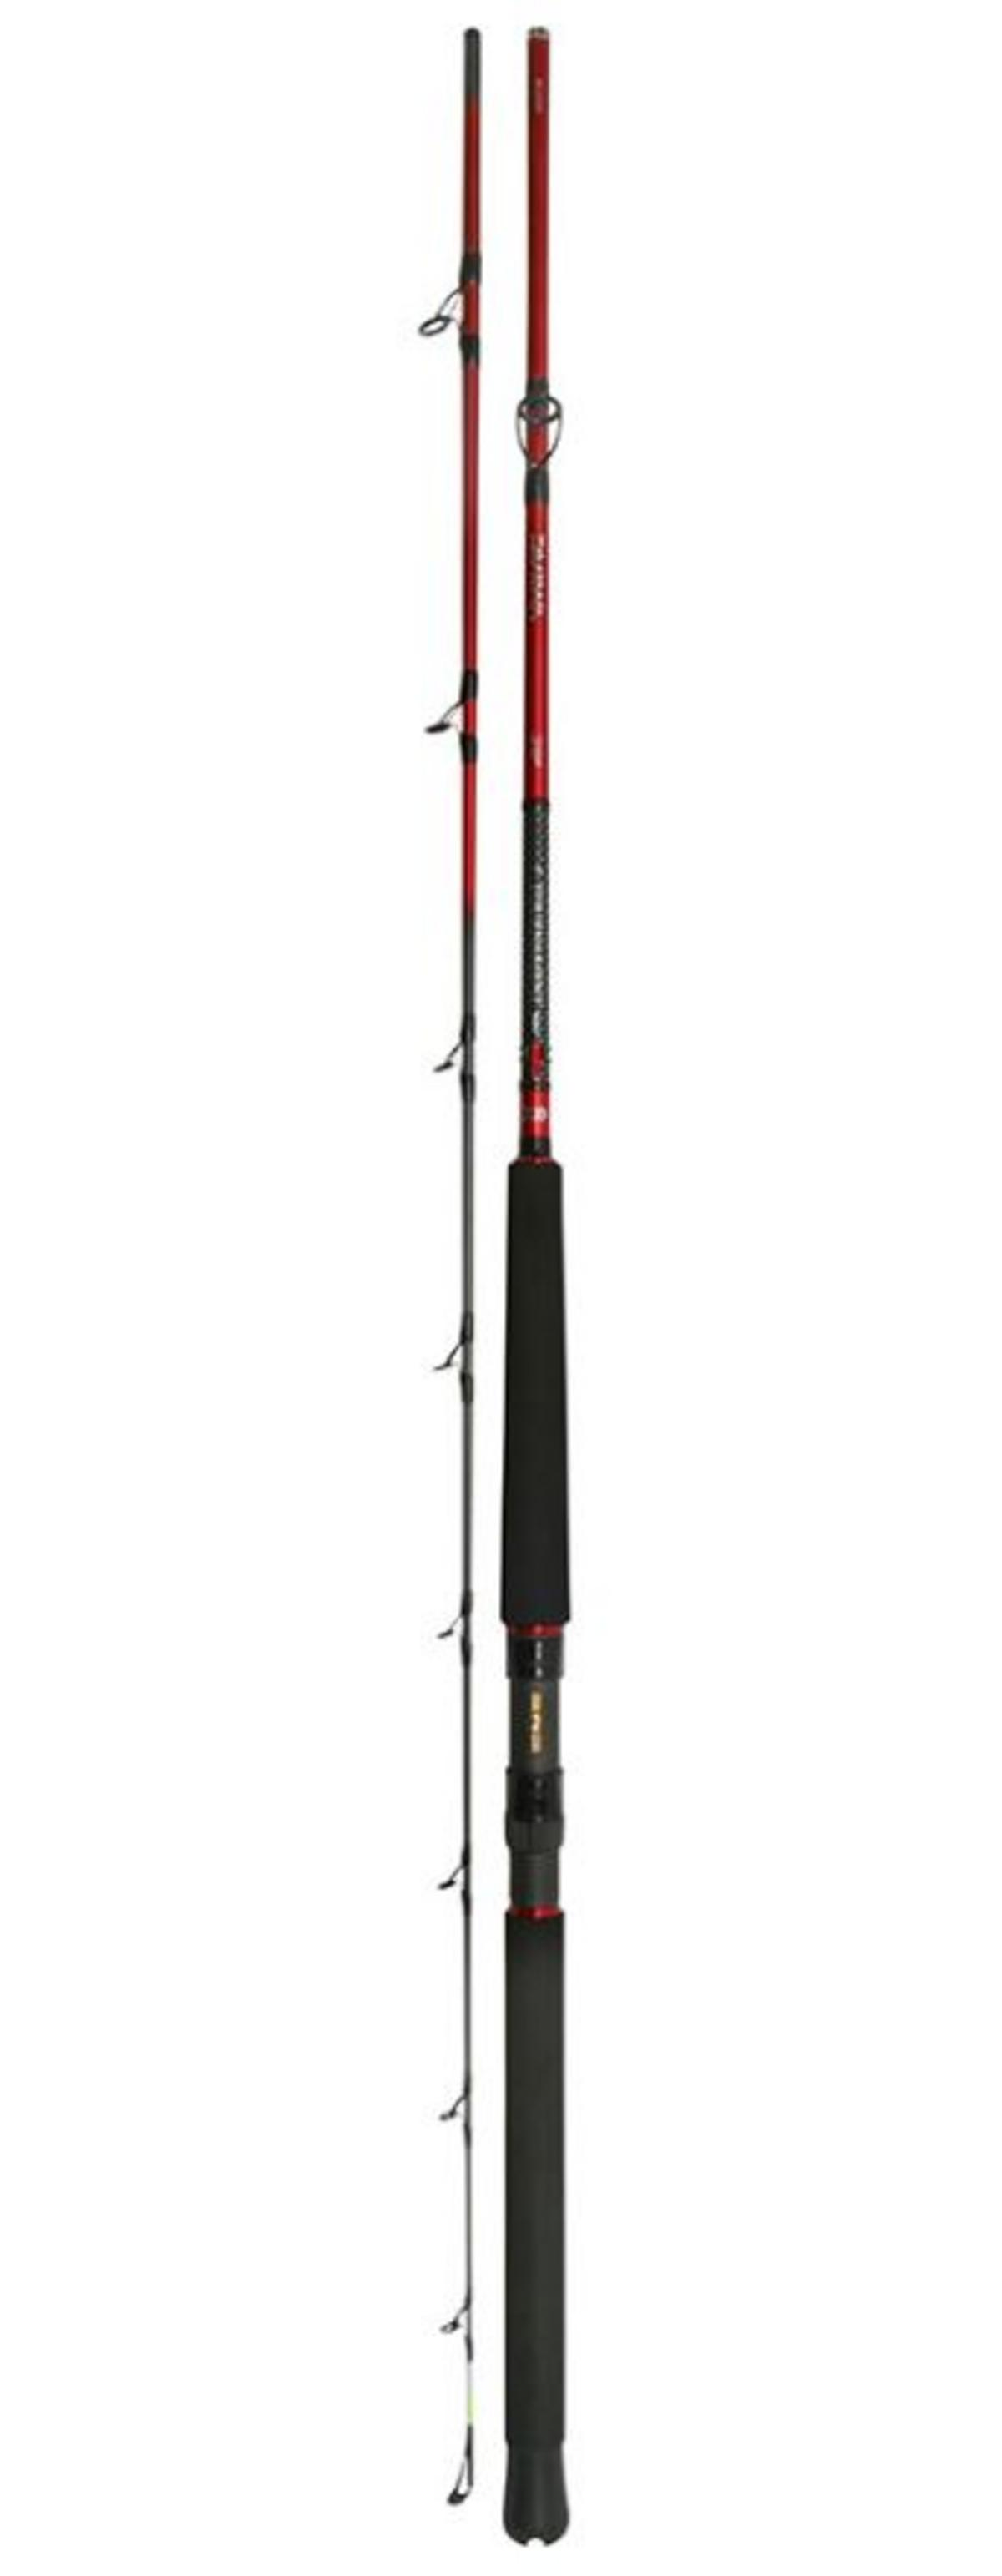 New Daiwa Tournament Boat Fishing Rods - All Models Available